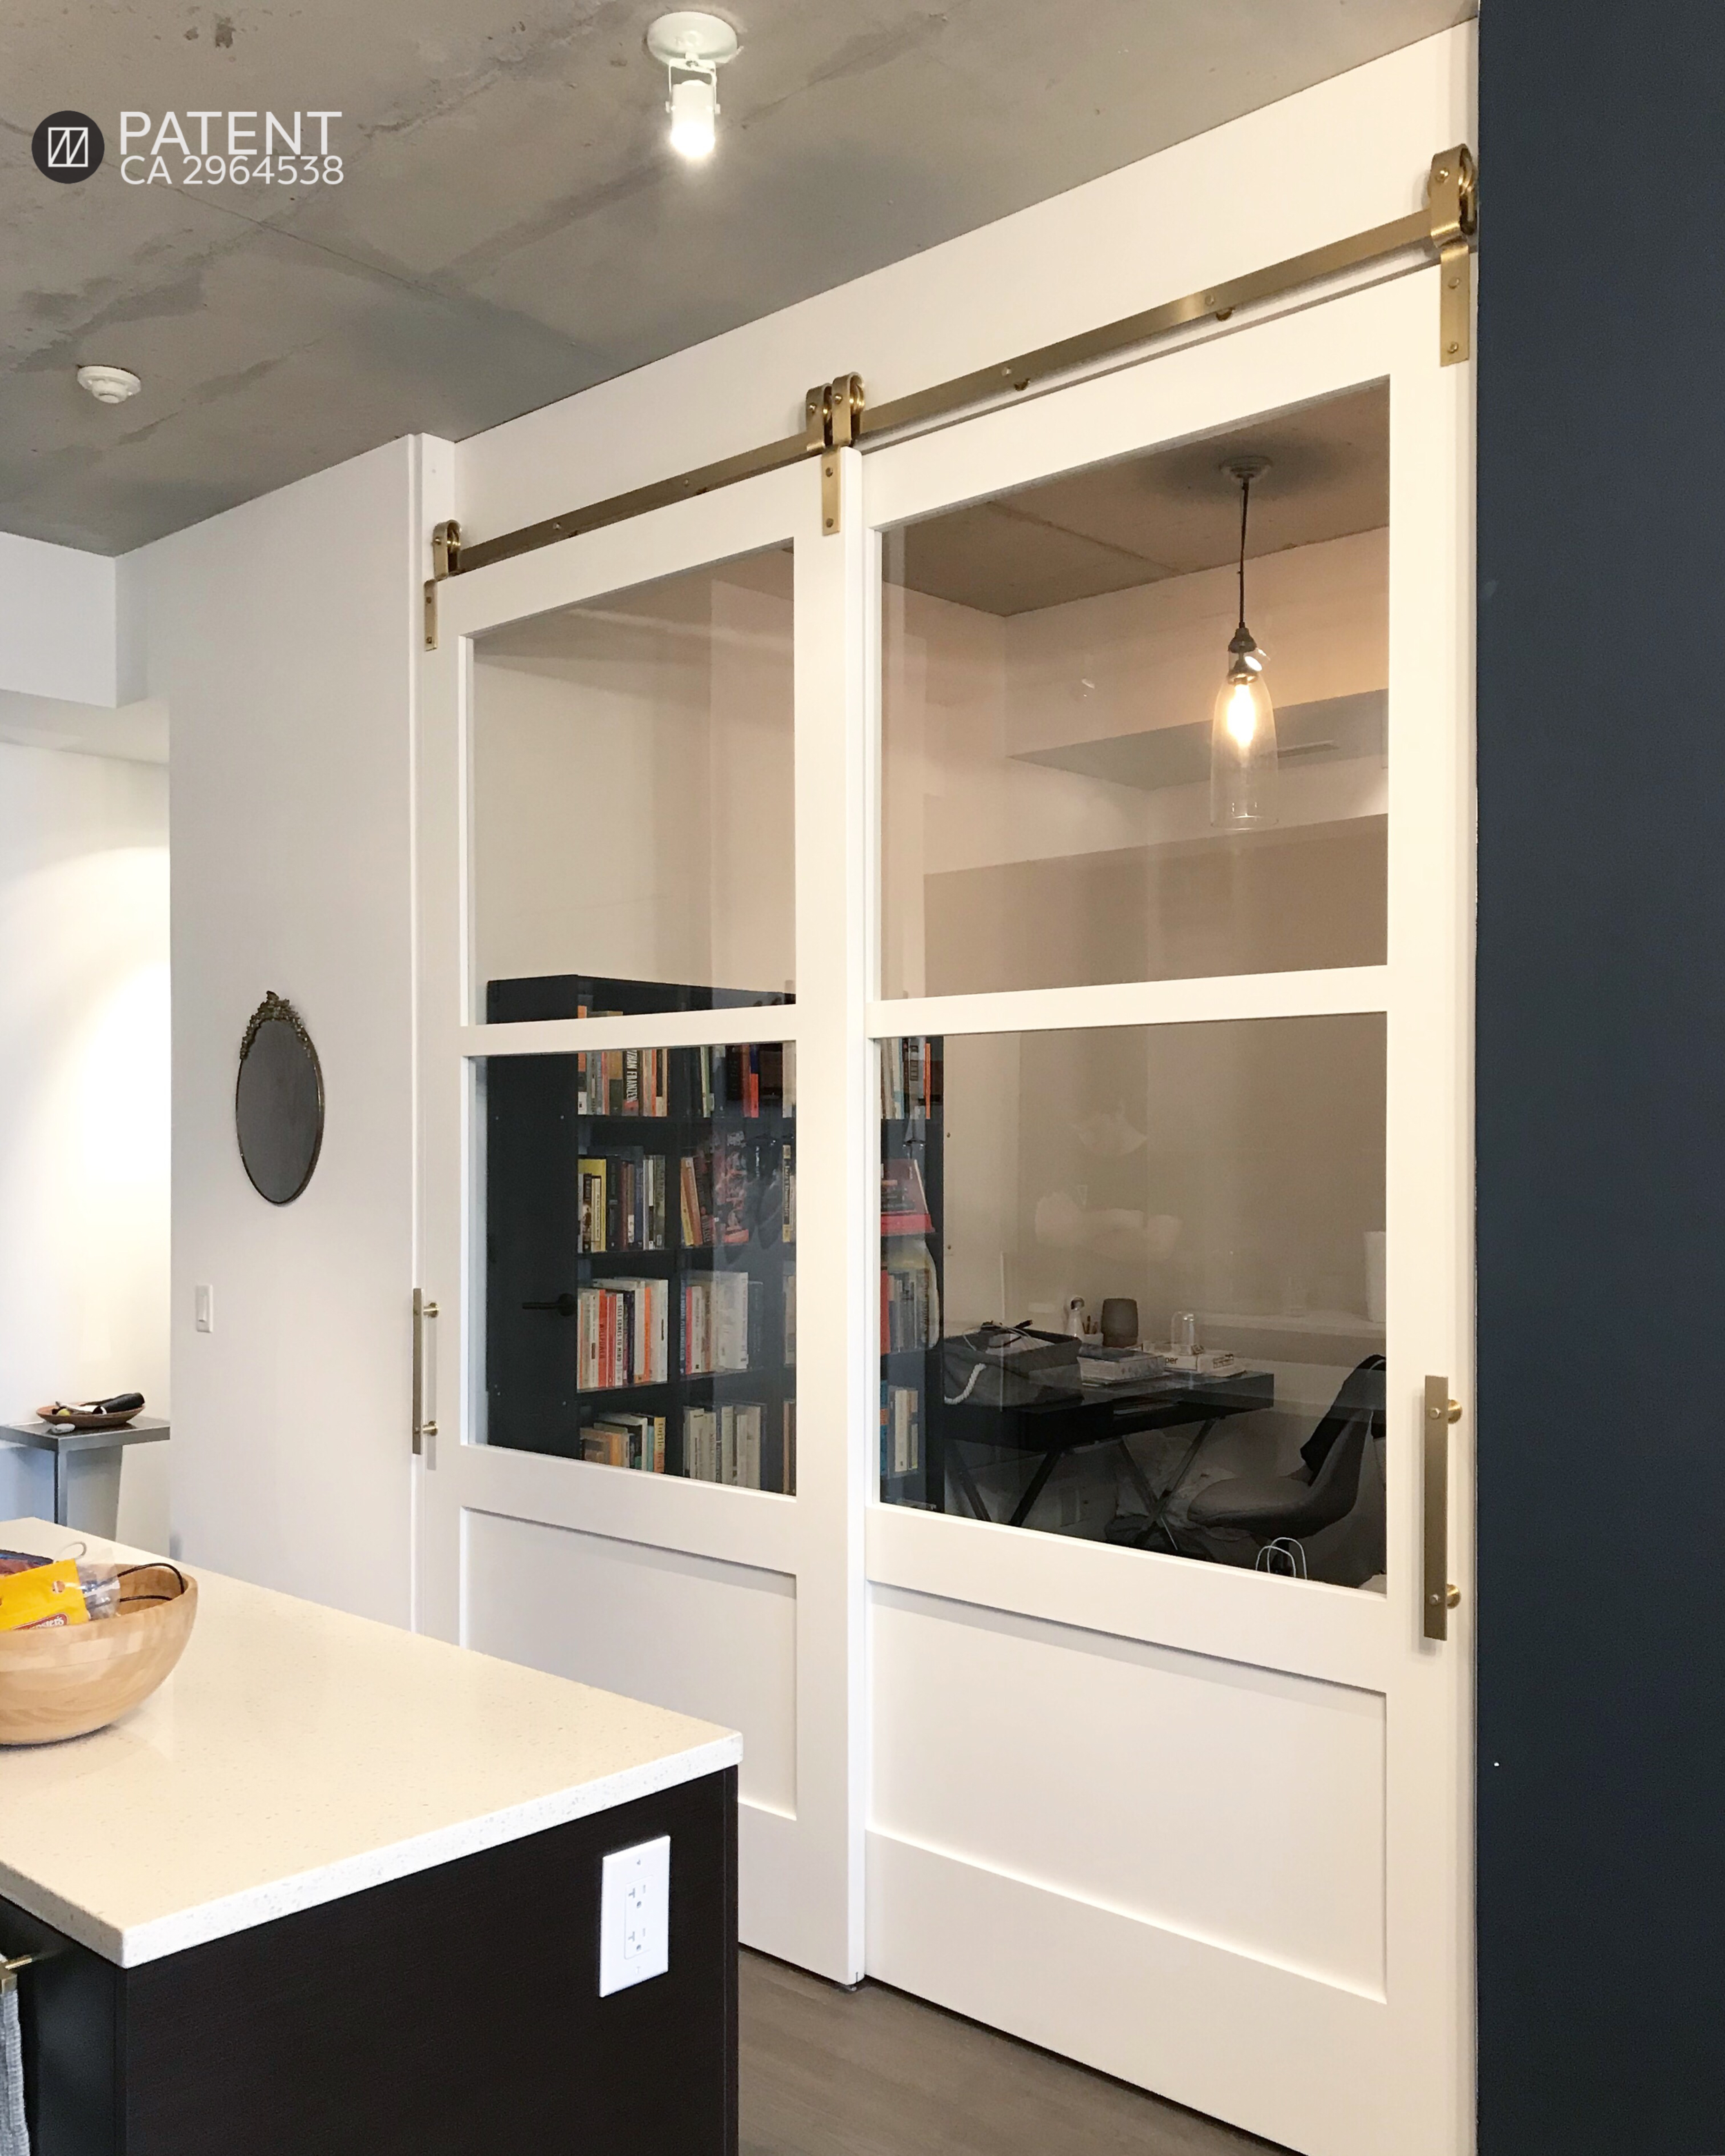 Our single bypass sliding doors with glass inserts convert a den into a home office. Due to their large size, they also serve as a wall.